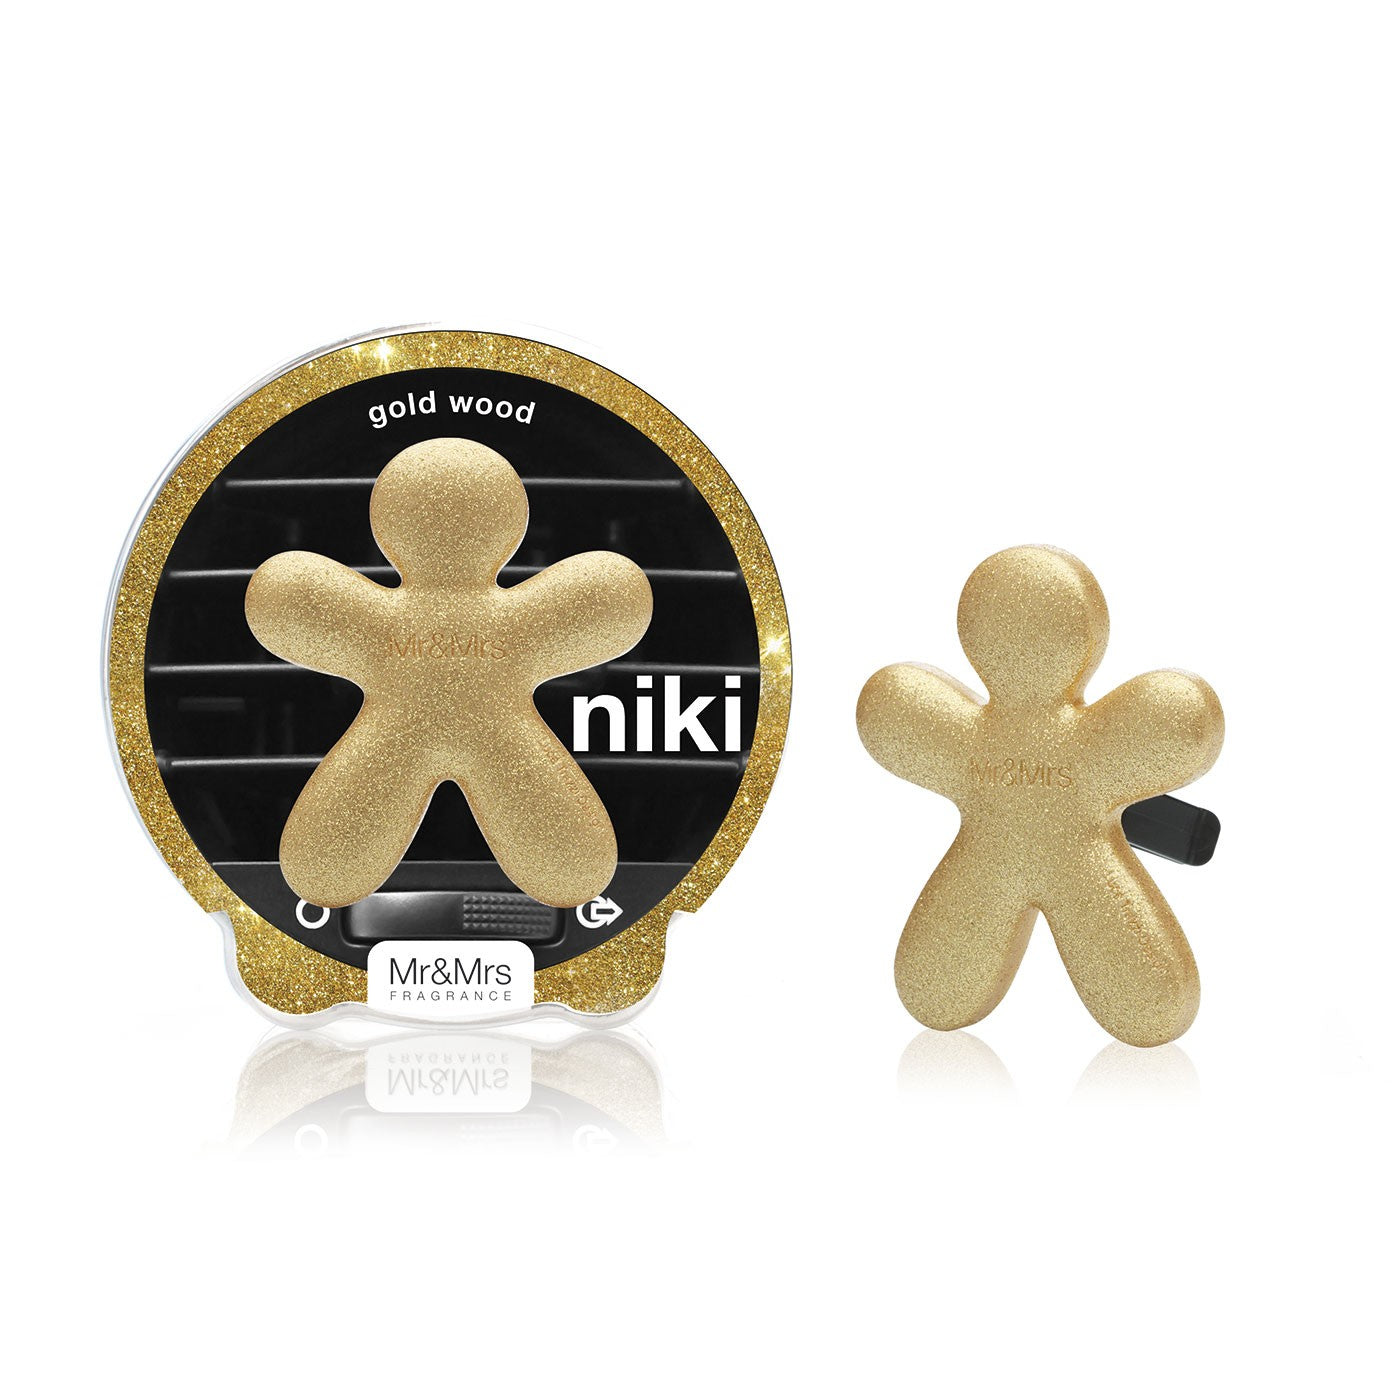 Niki (Glitter gold - gold wood)